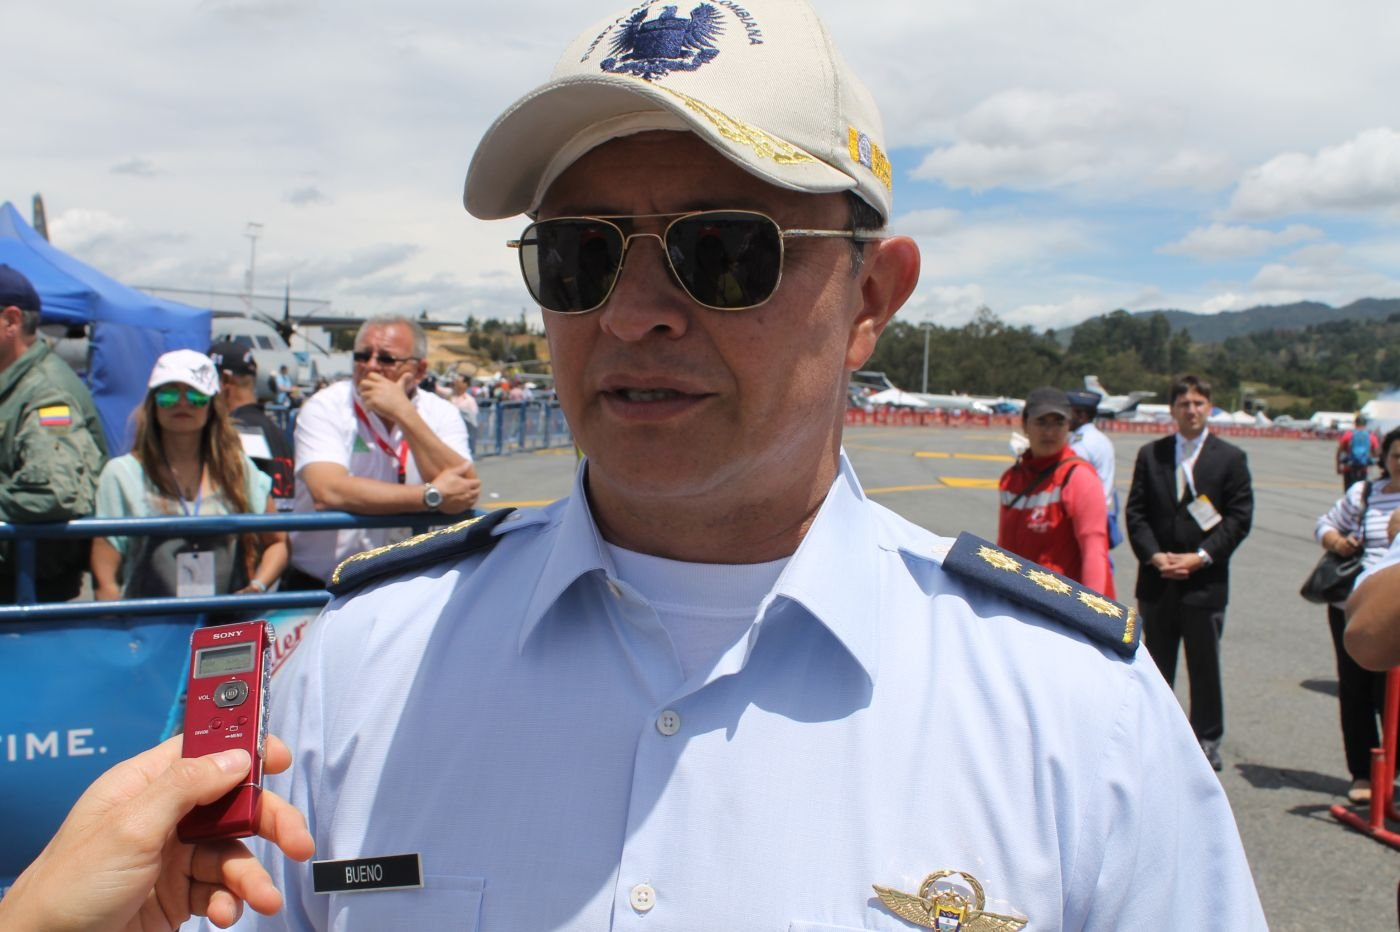 General Bueno, Newly Appointed Colombian Air Force Chief, Attends Air Show